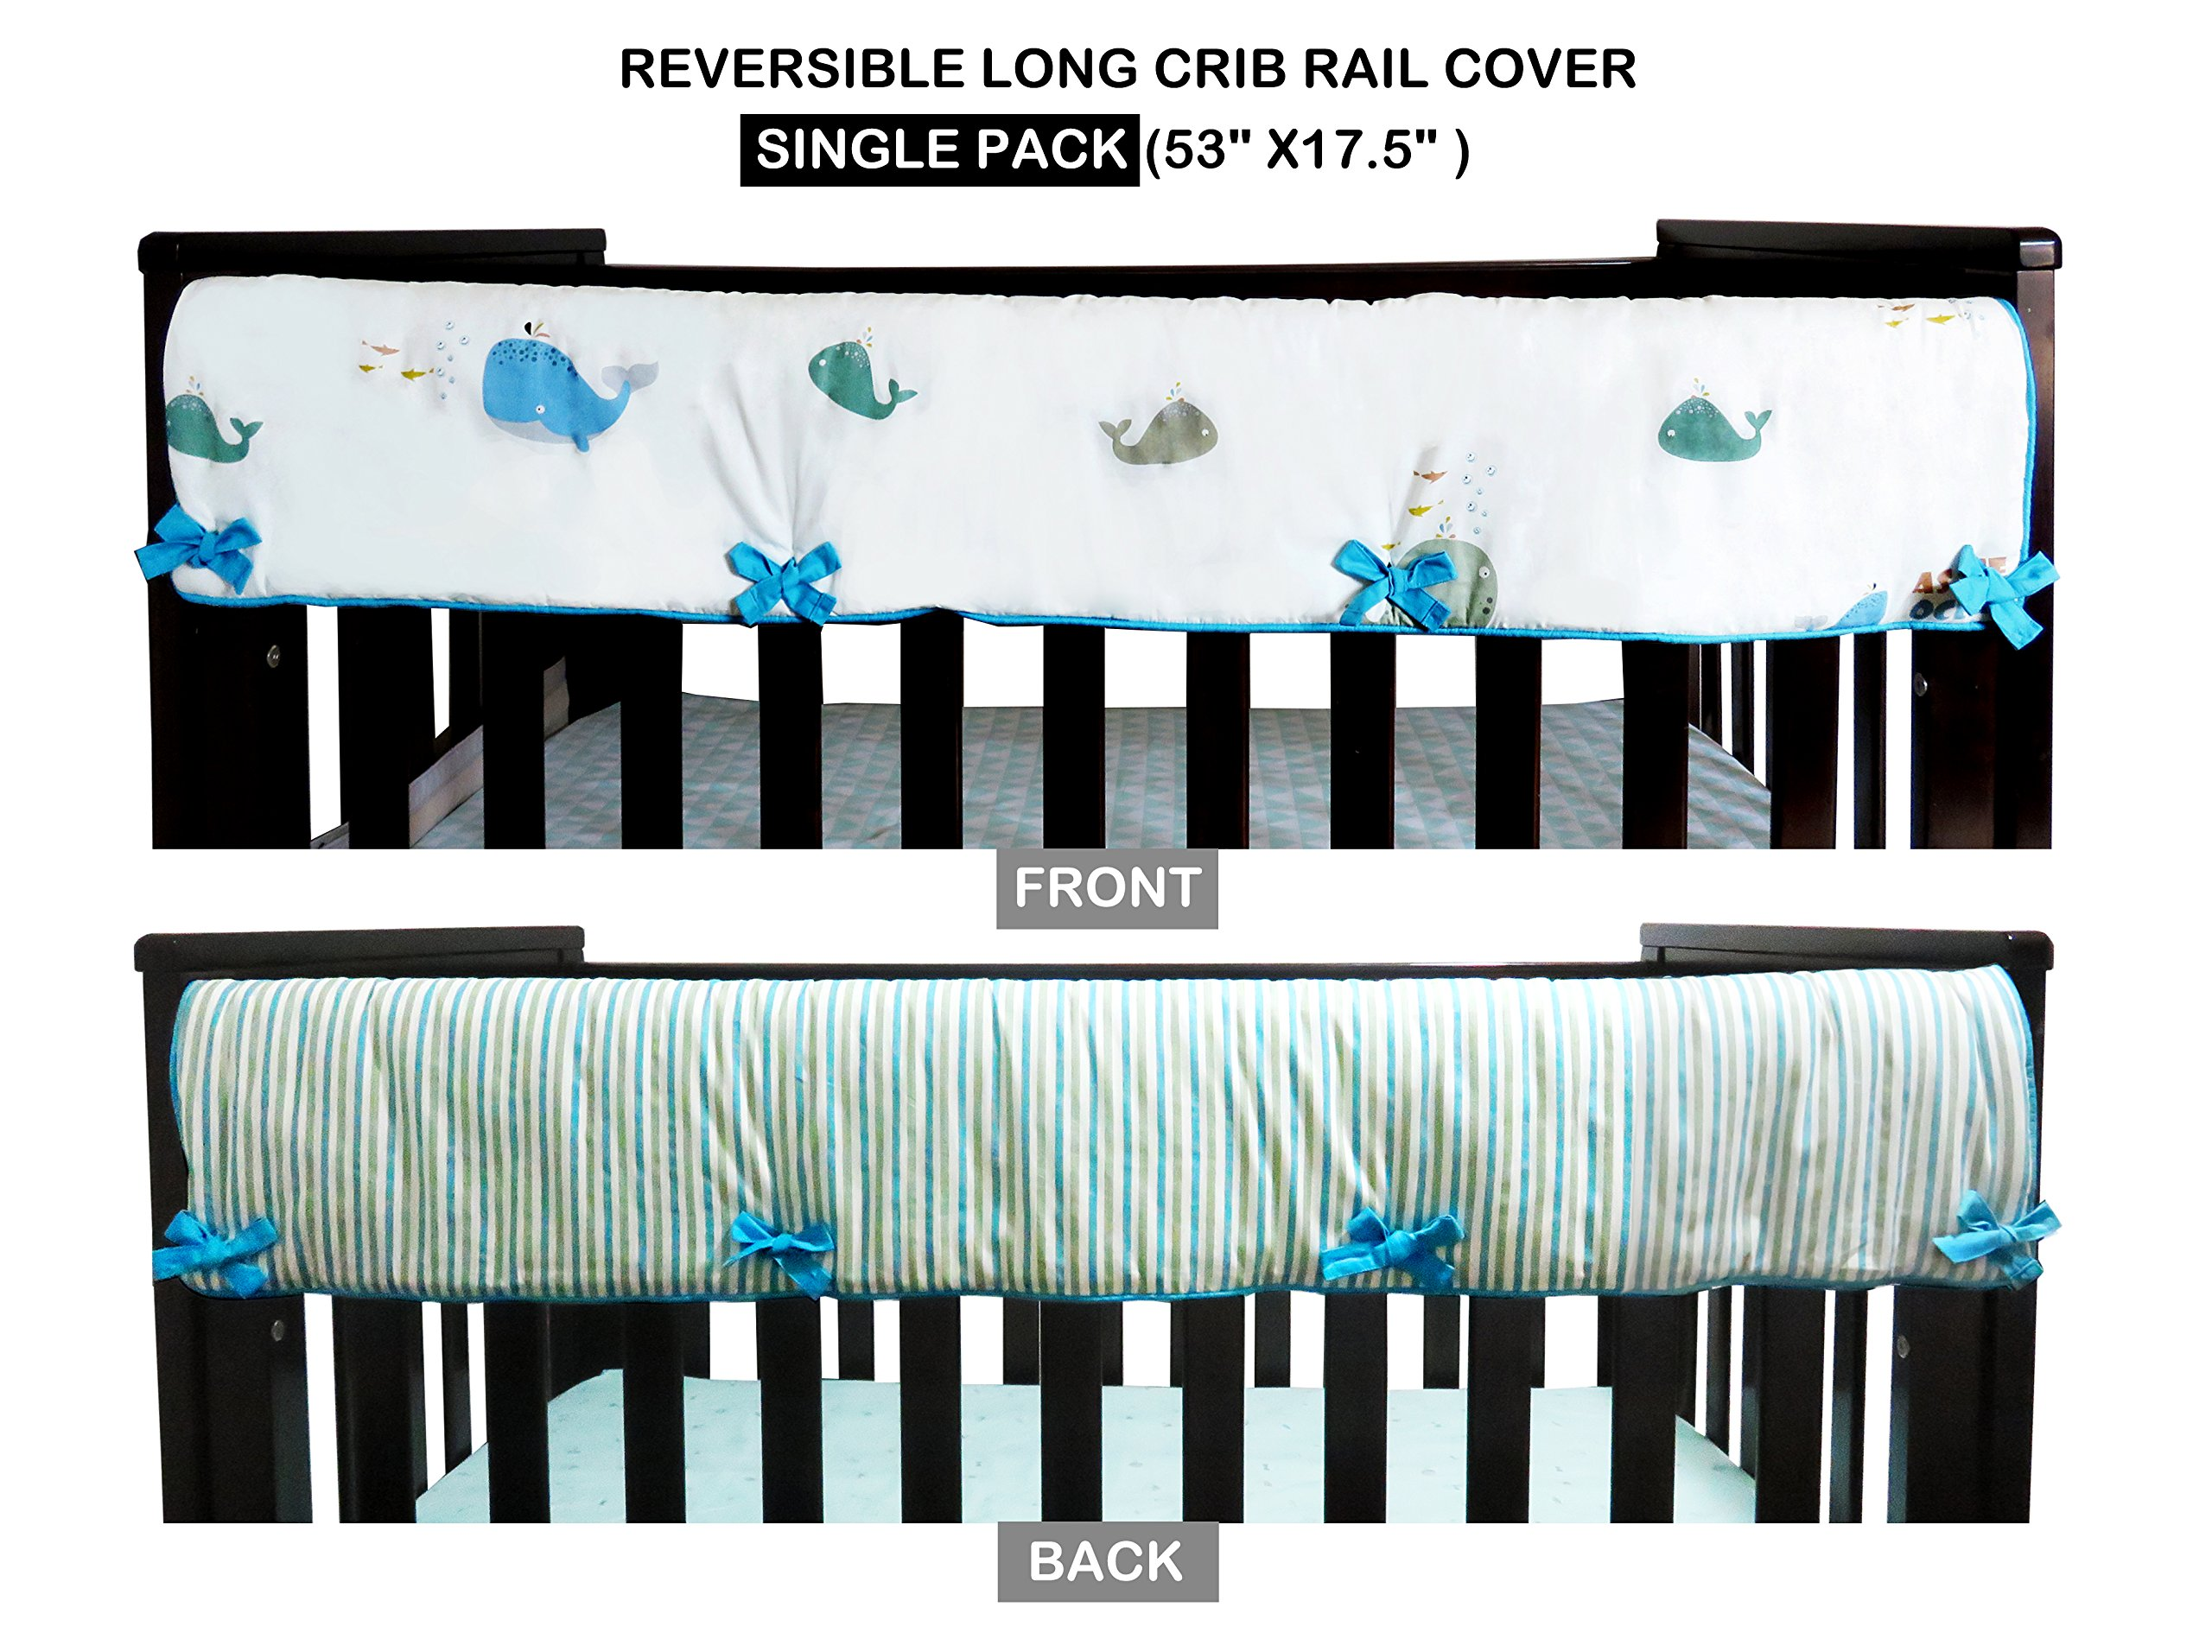 1 Piece 100% Cotton Long Front Crib Rail Cover/Guard/Wrap 53'' X 17.5'' for Your Teething Baby,Soft Padding,Cute,Reversible, Machine Washable, Fits Most Standard Narrow & Modern Wide Crib Rails